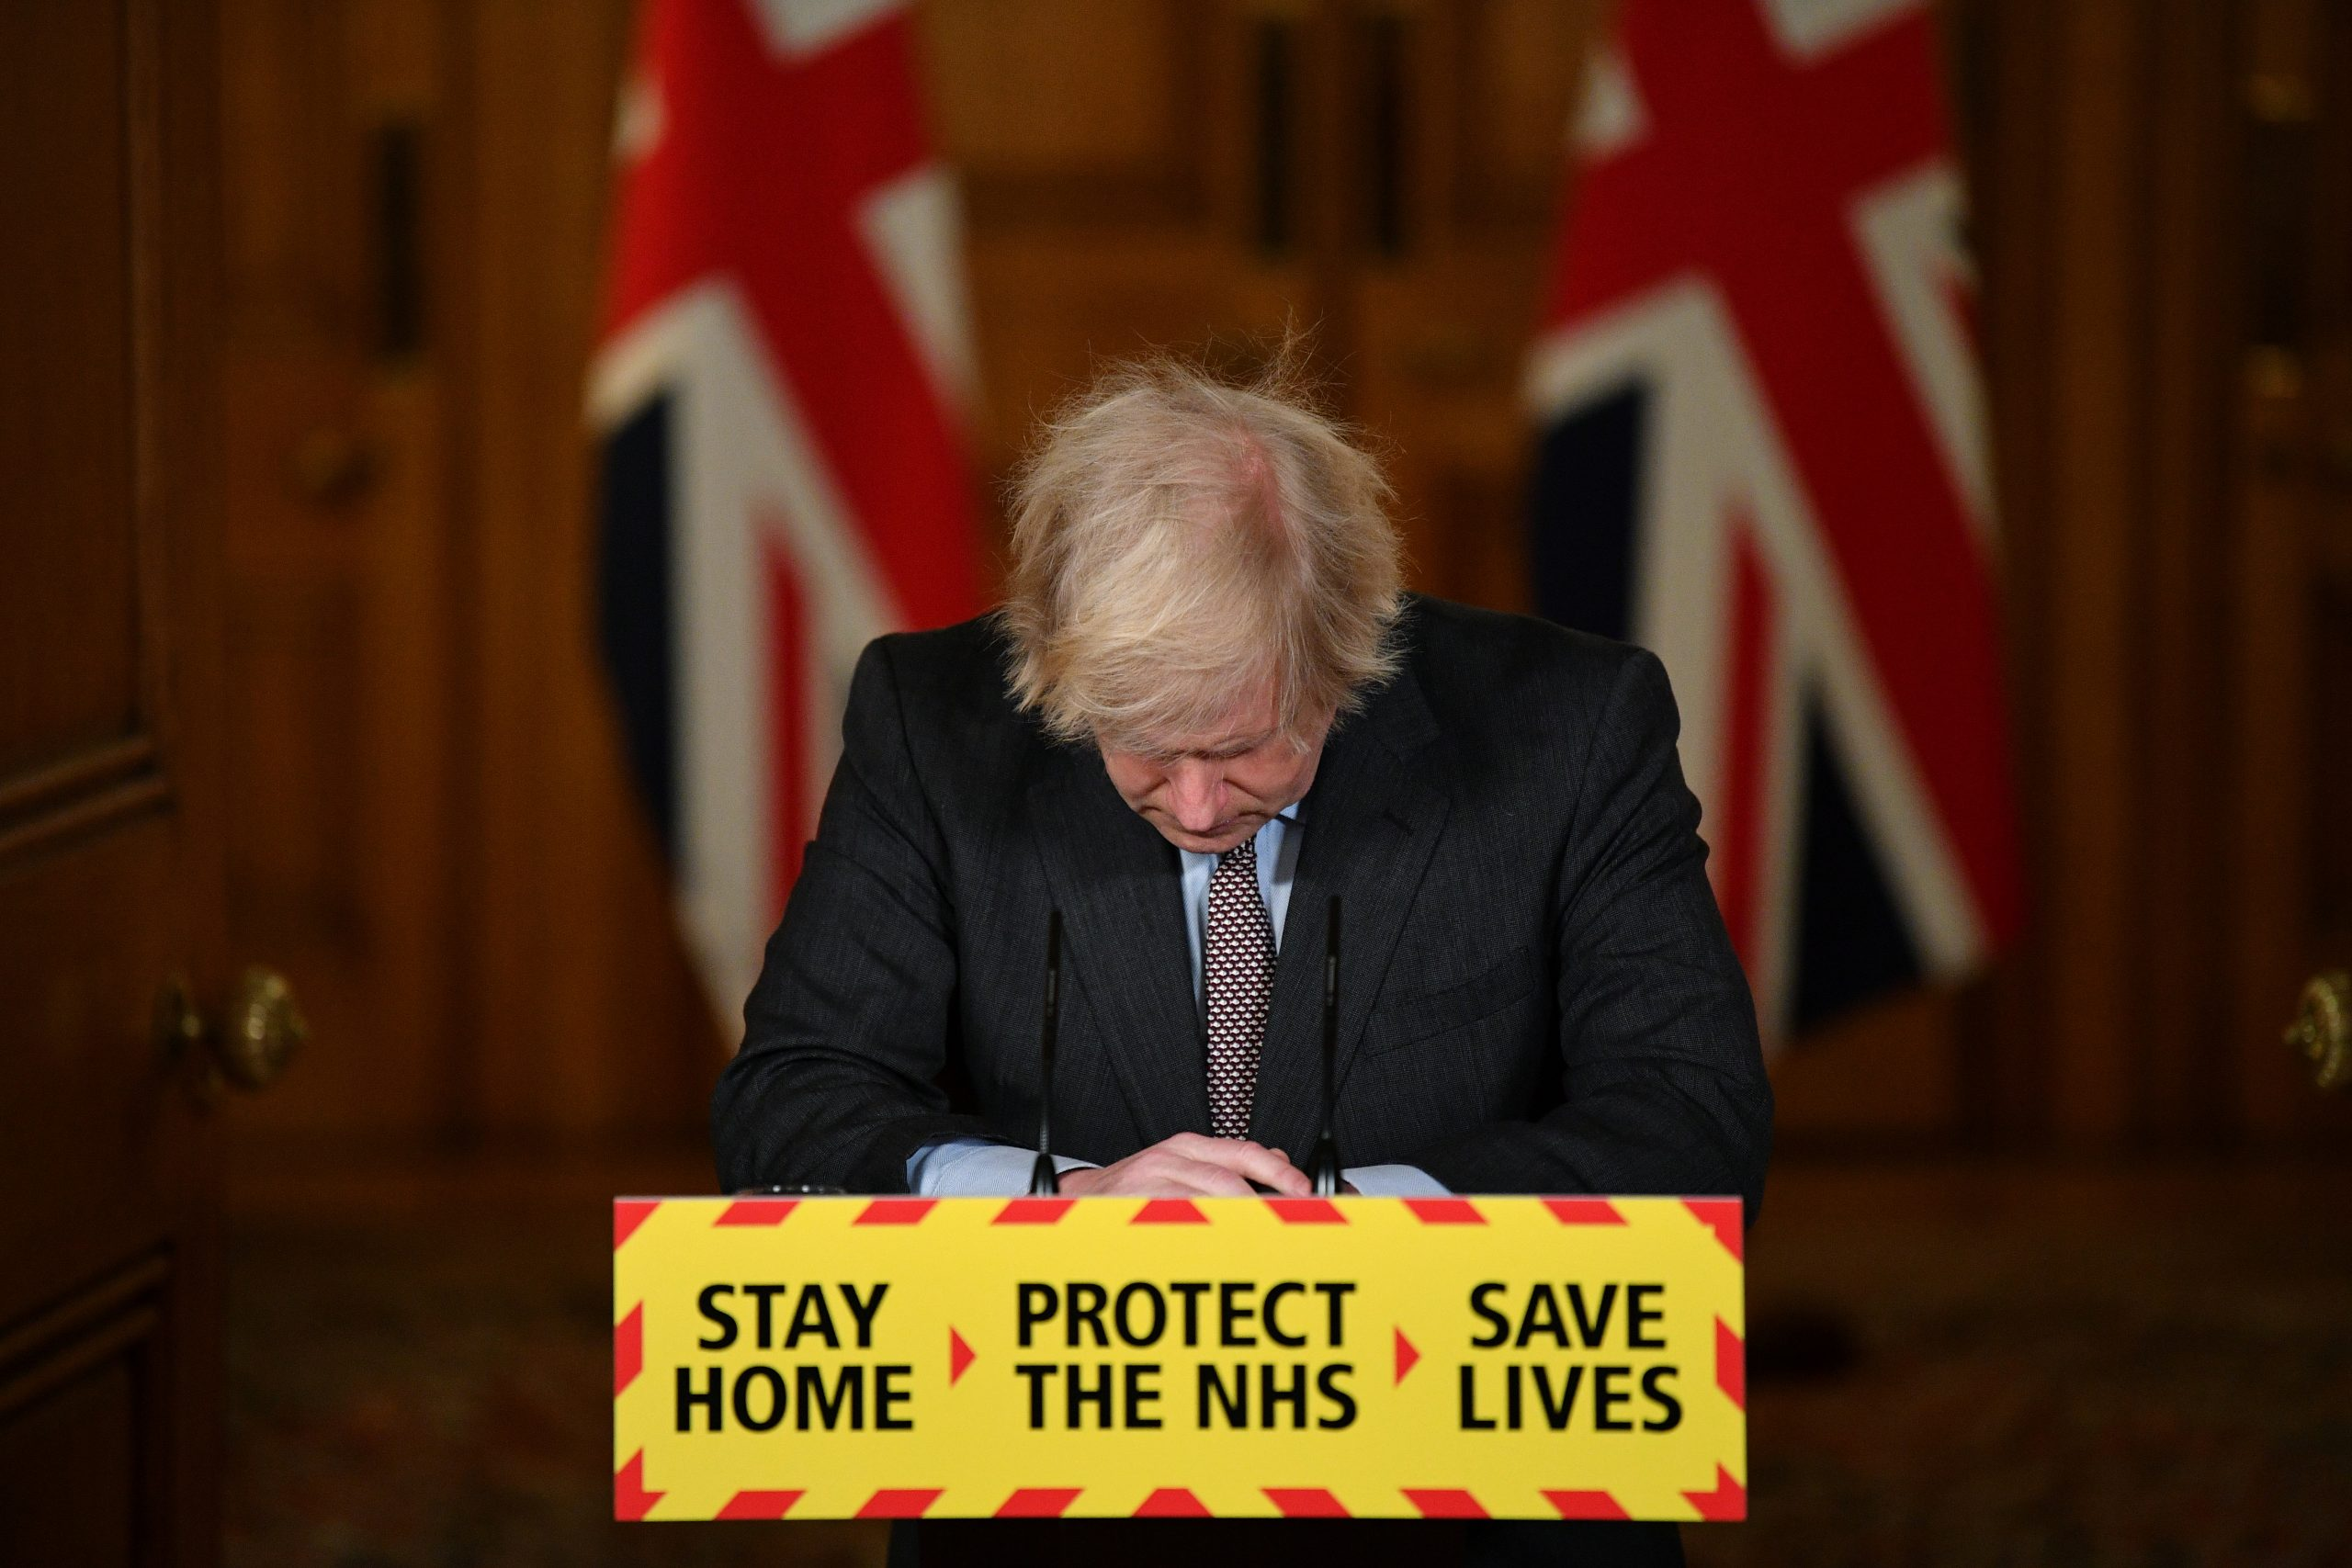 Britain's Prime Minister Boris Johnson looks down at the podium as he attends a virtual news conference on the COVID-19 pandemic inside 10 Downing Street in London, Britain January 26, 2021.